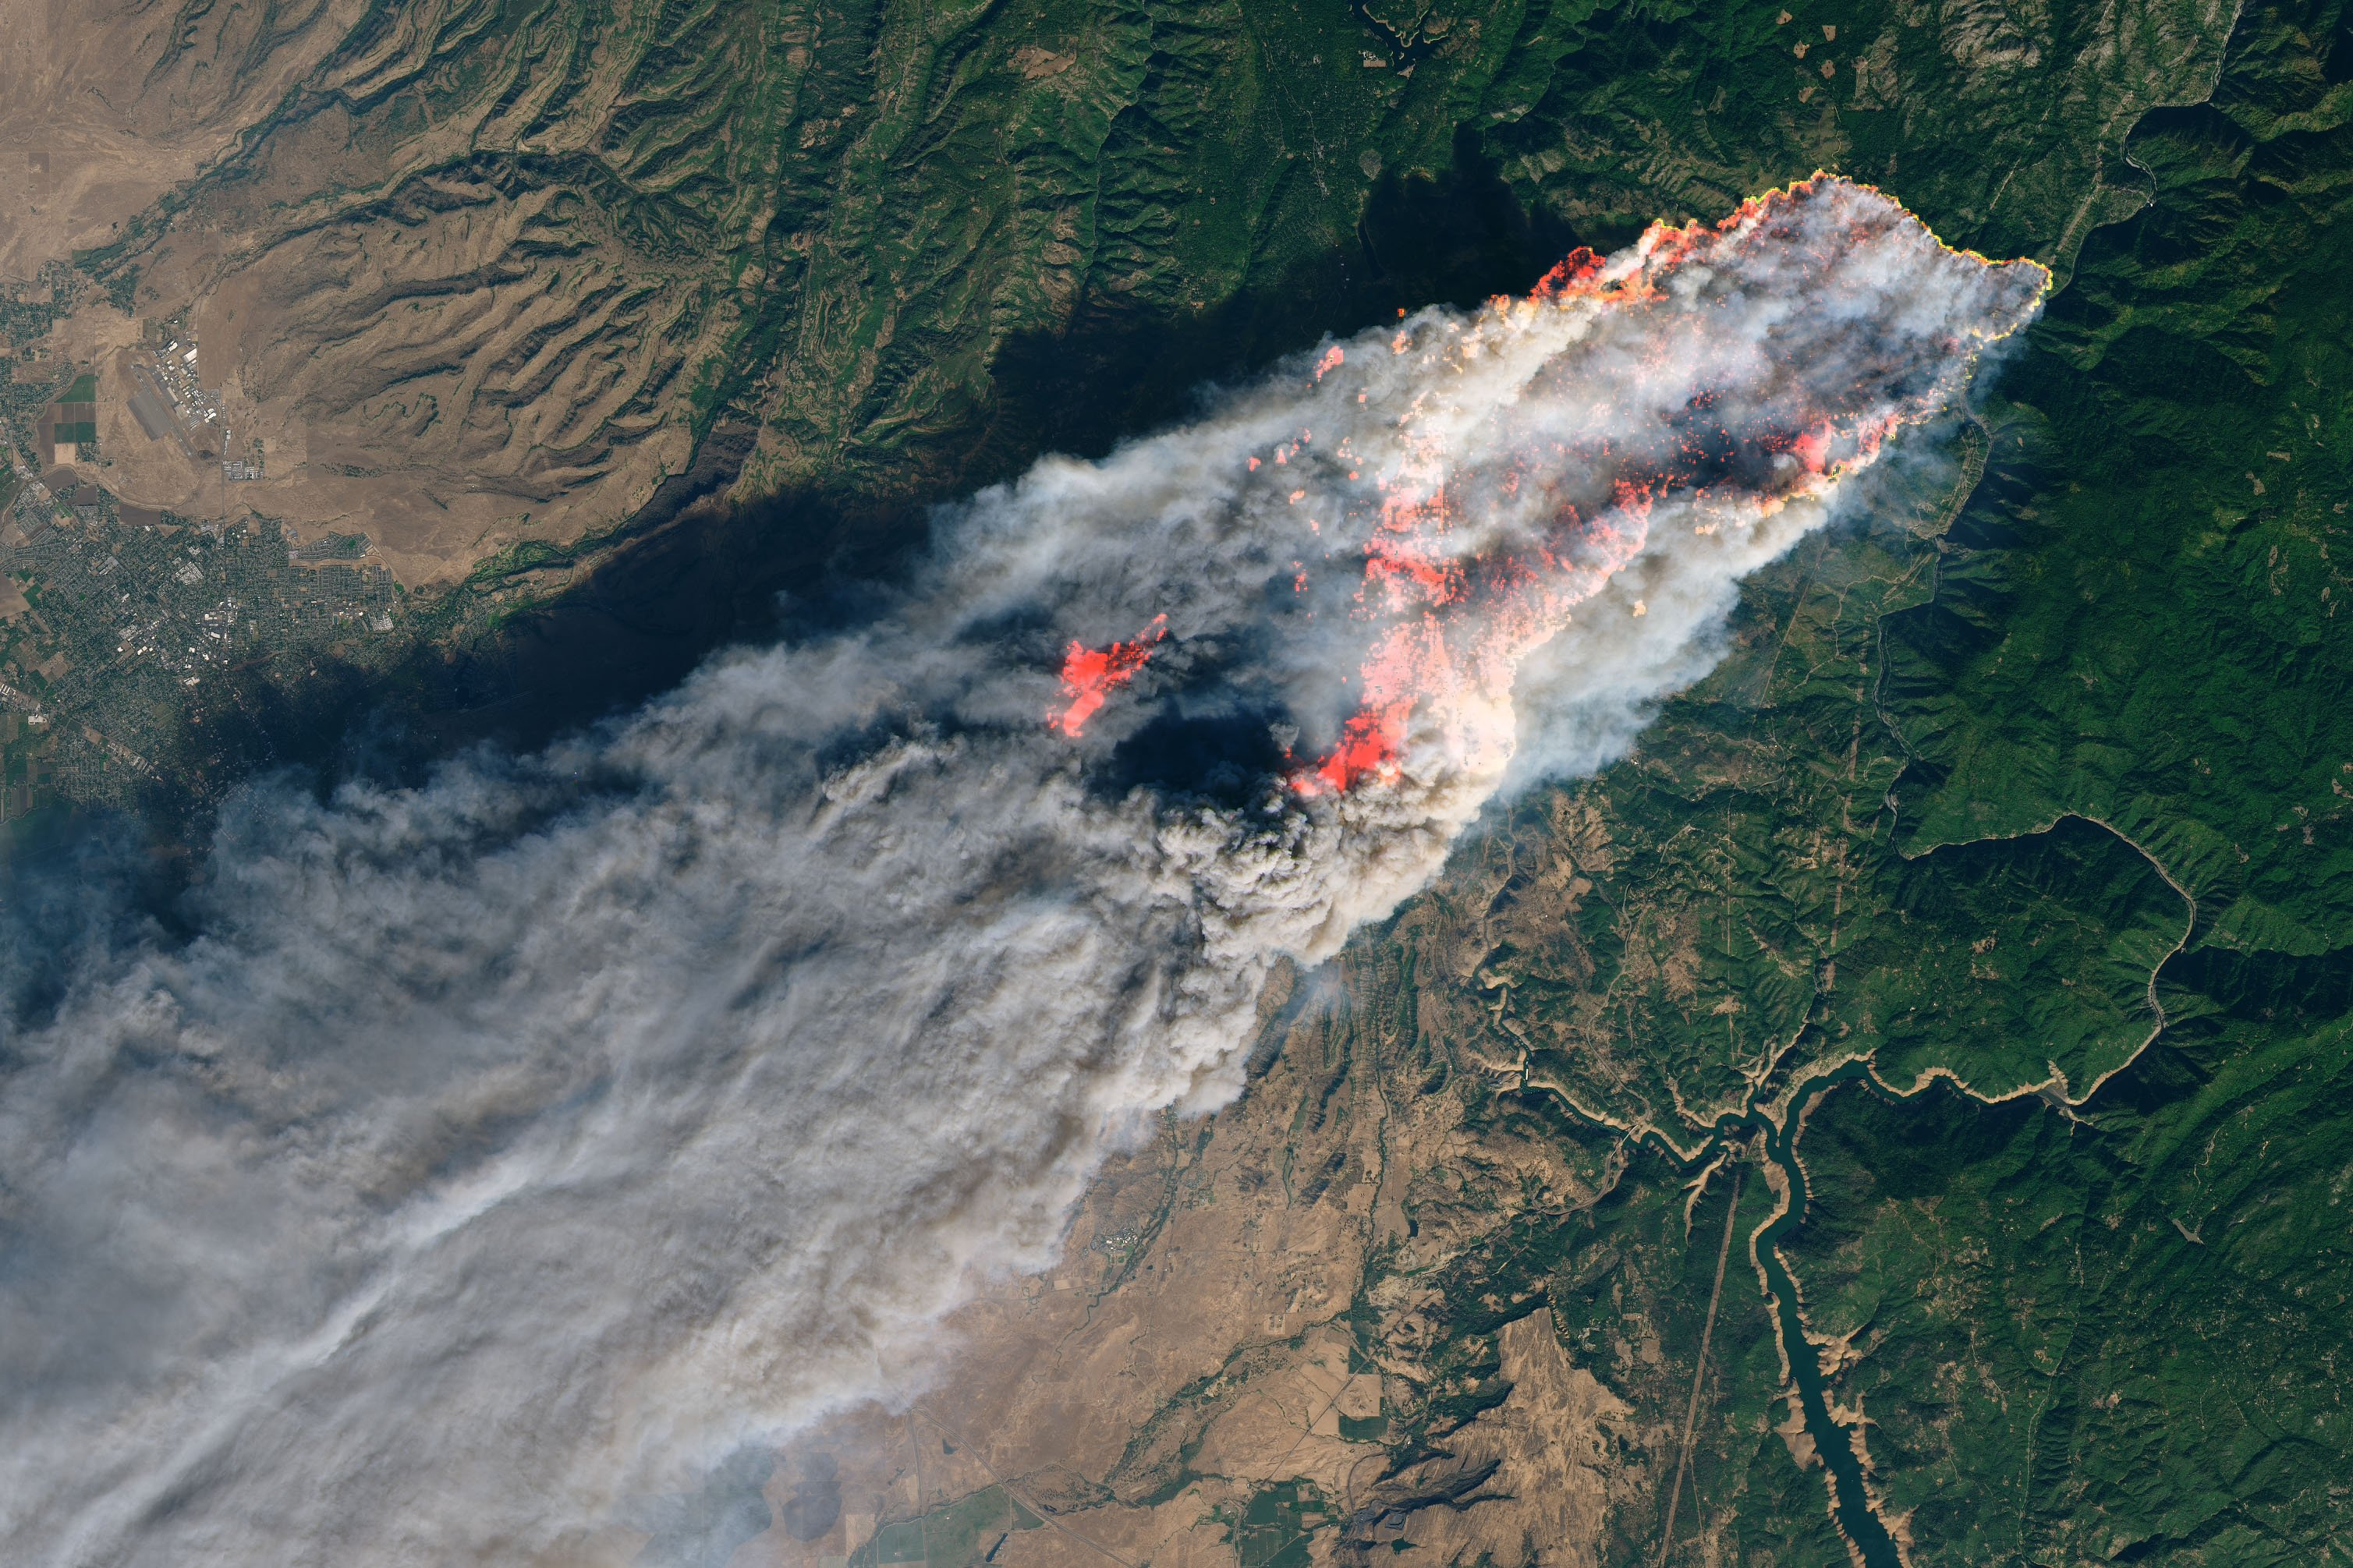 Camp Fire Rages in California 8.11.18 NASA